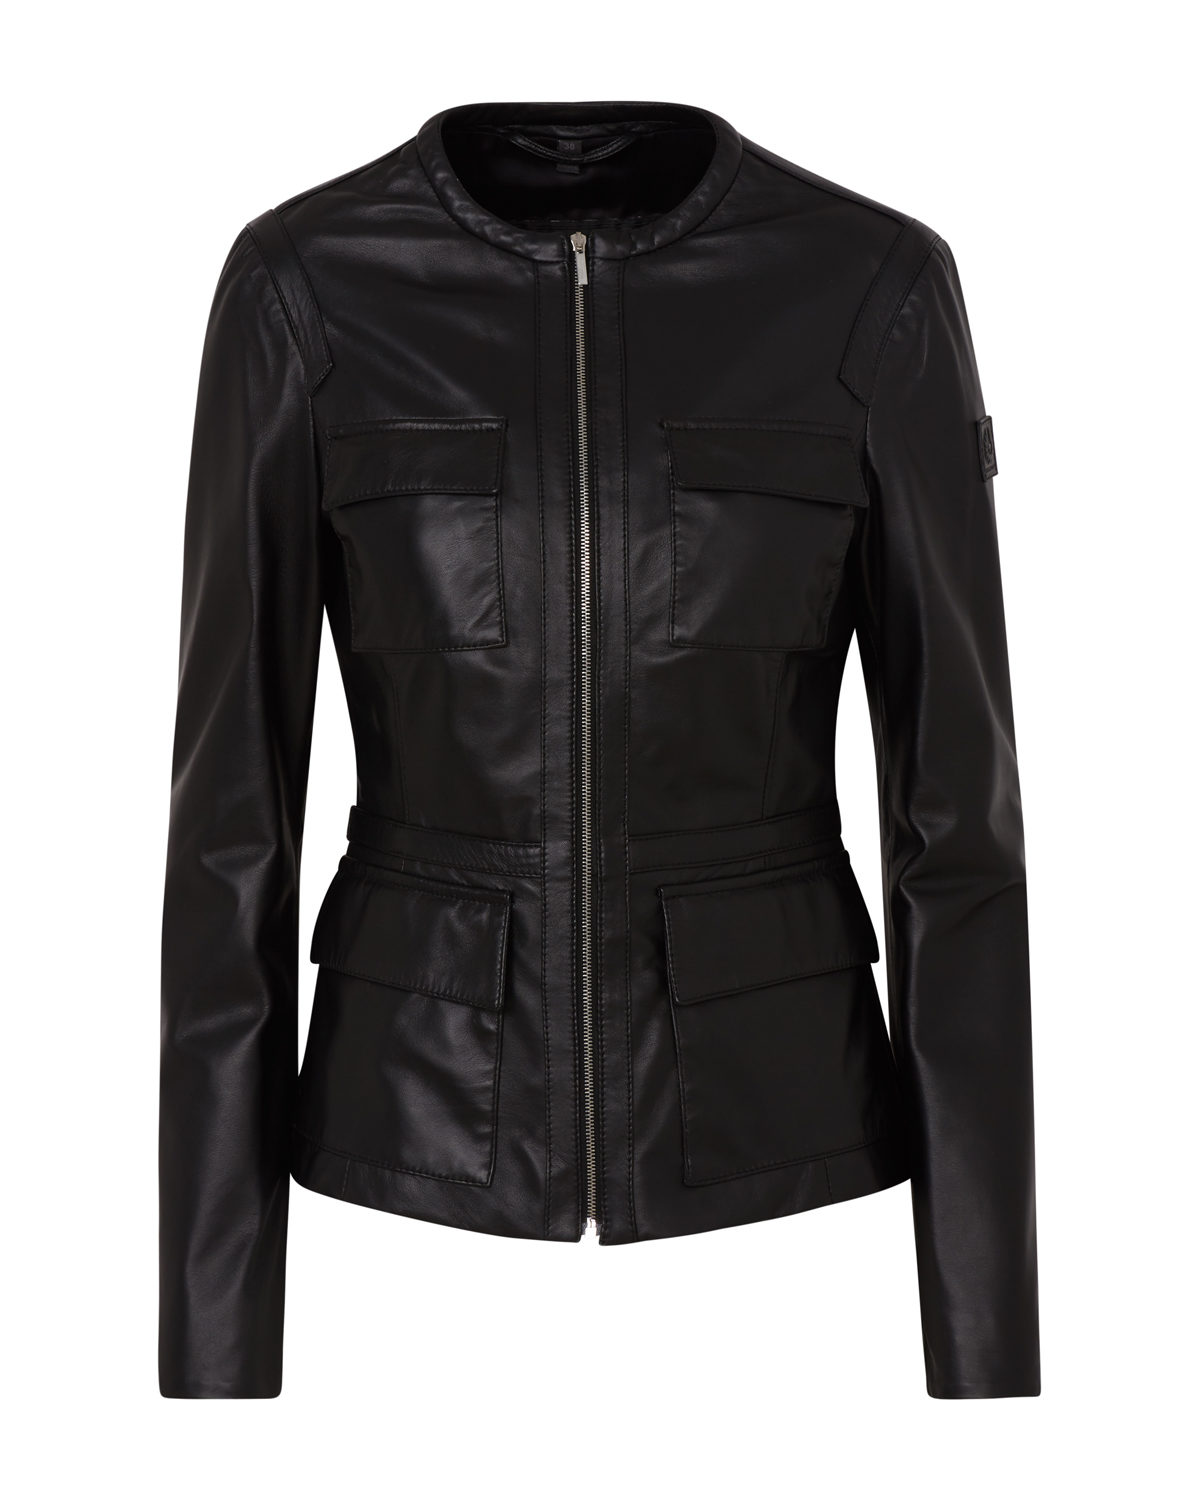 Belstaff Brimms Women S Nappa Leather Jacket Black Linea